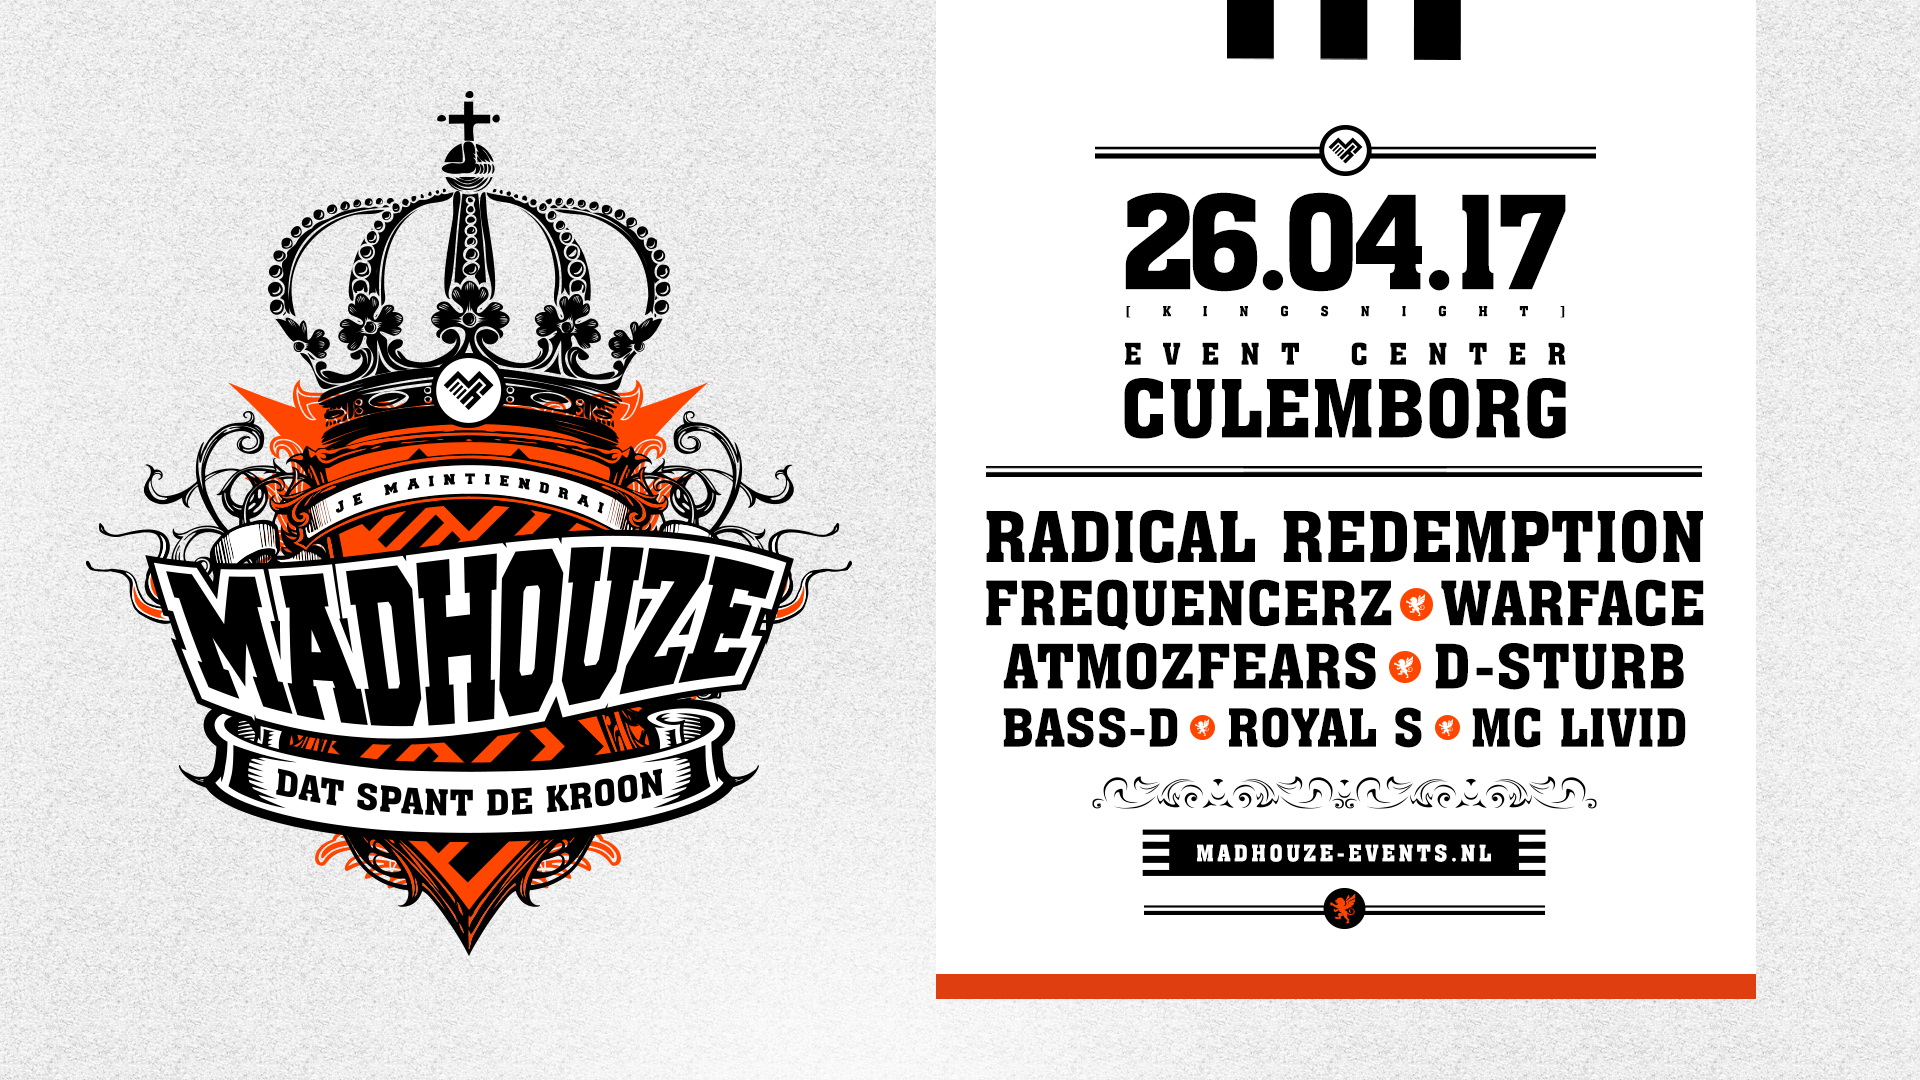 madhouze-kingsnight-2017-website-banner-line-up-1920x10801